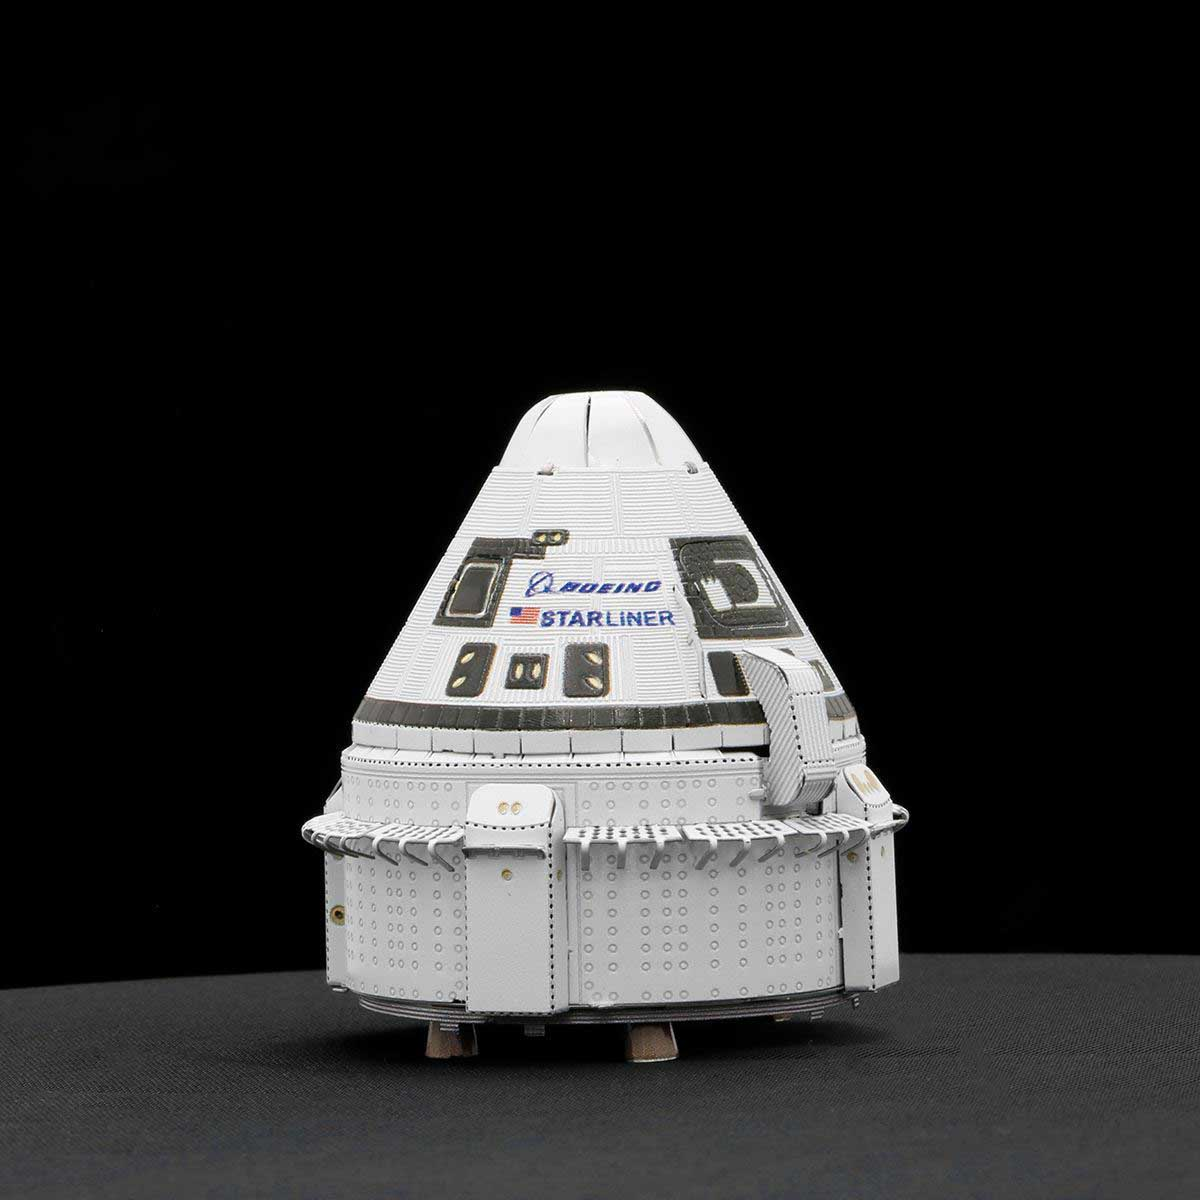 Boeing Starliner Space 3D Puzzle